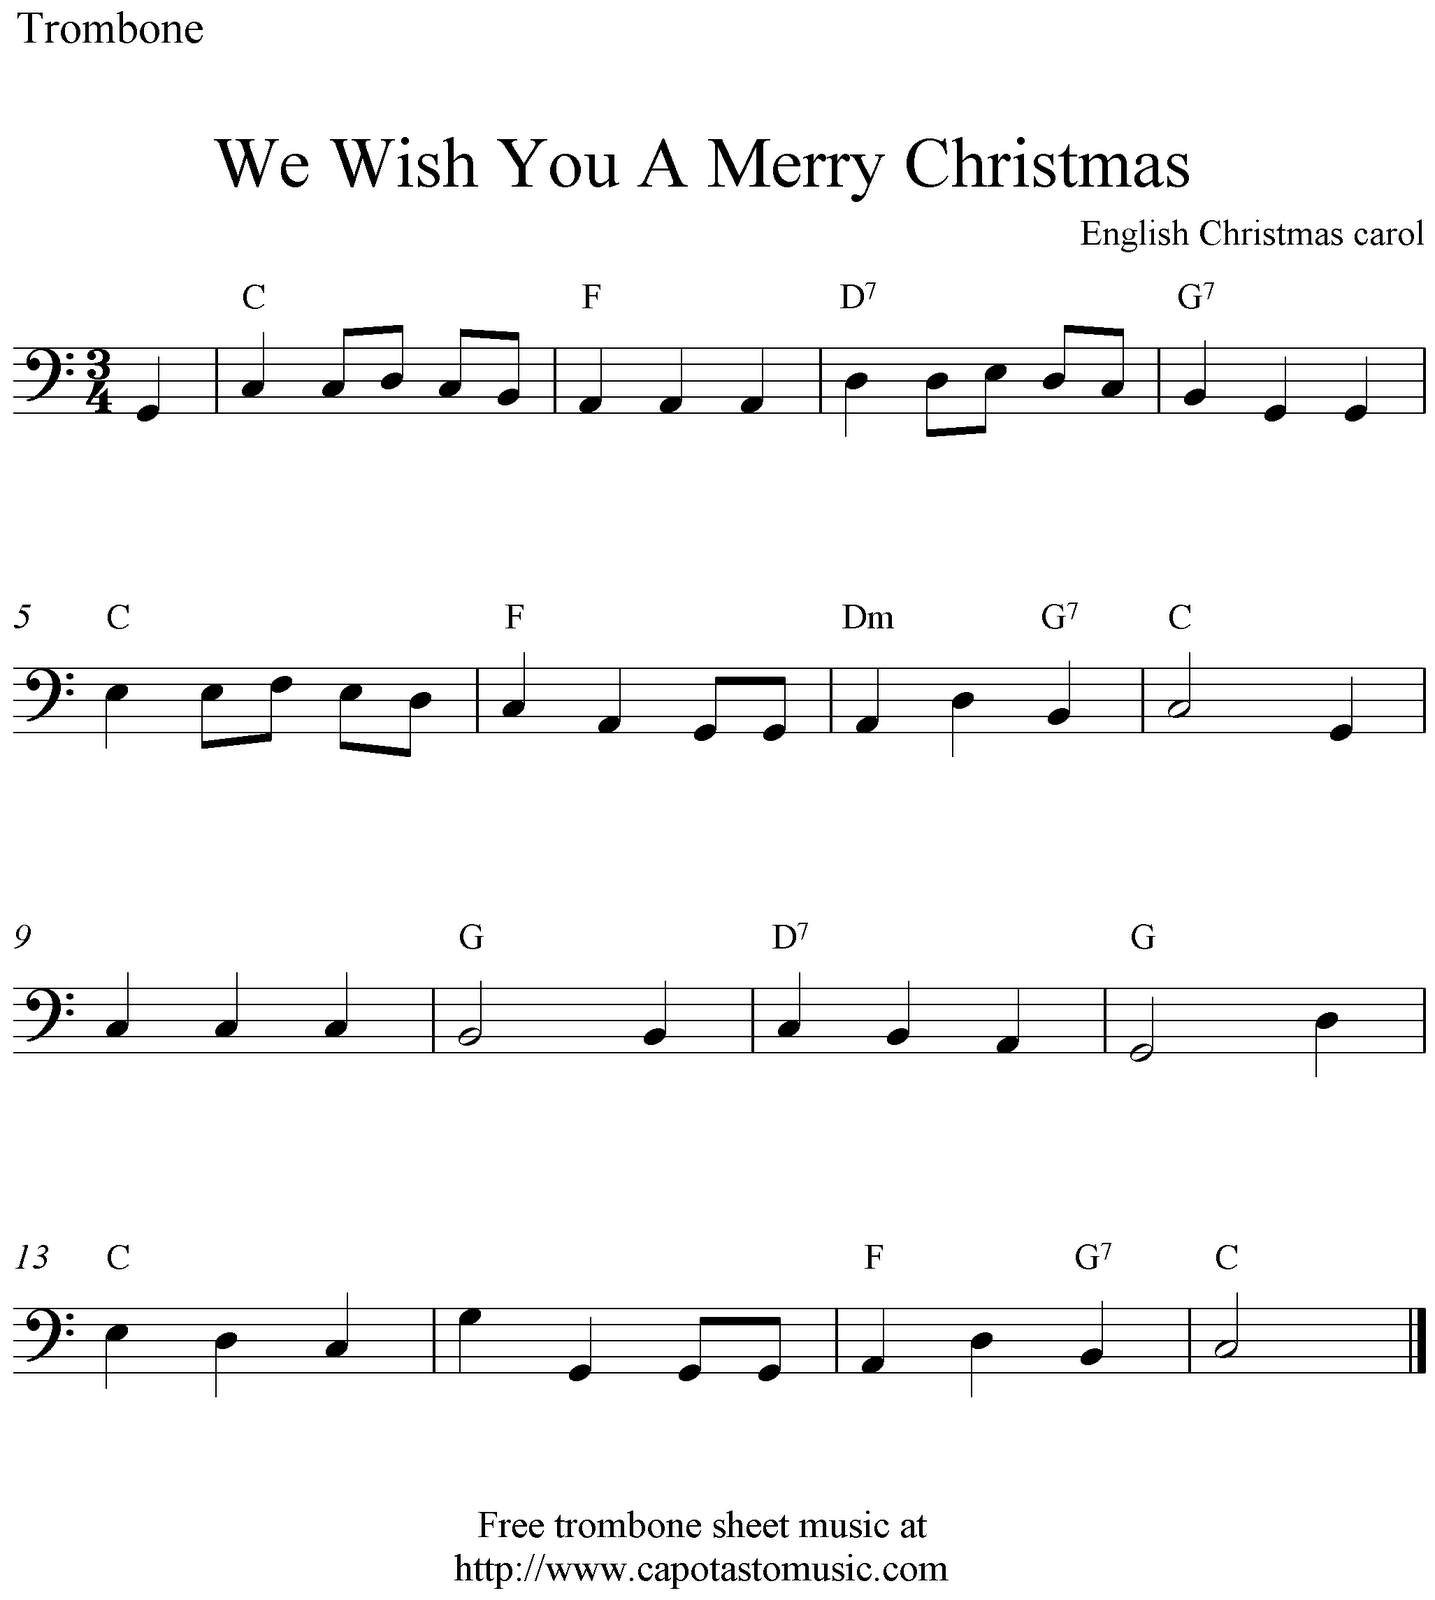 Wish You Merry Christmas Piano Notes.70 Melodious Christmas Piano Sheet Music Kittybabylove Com